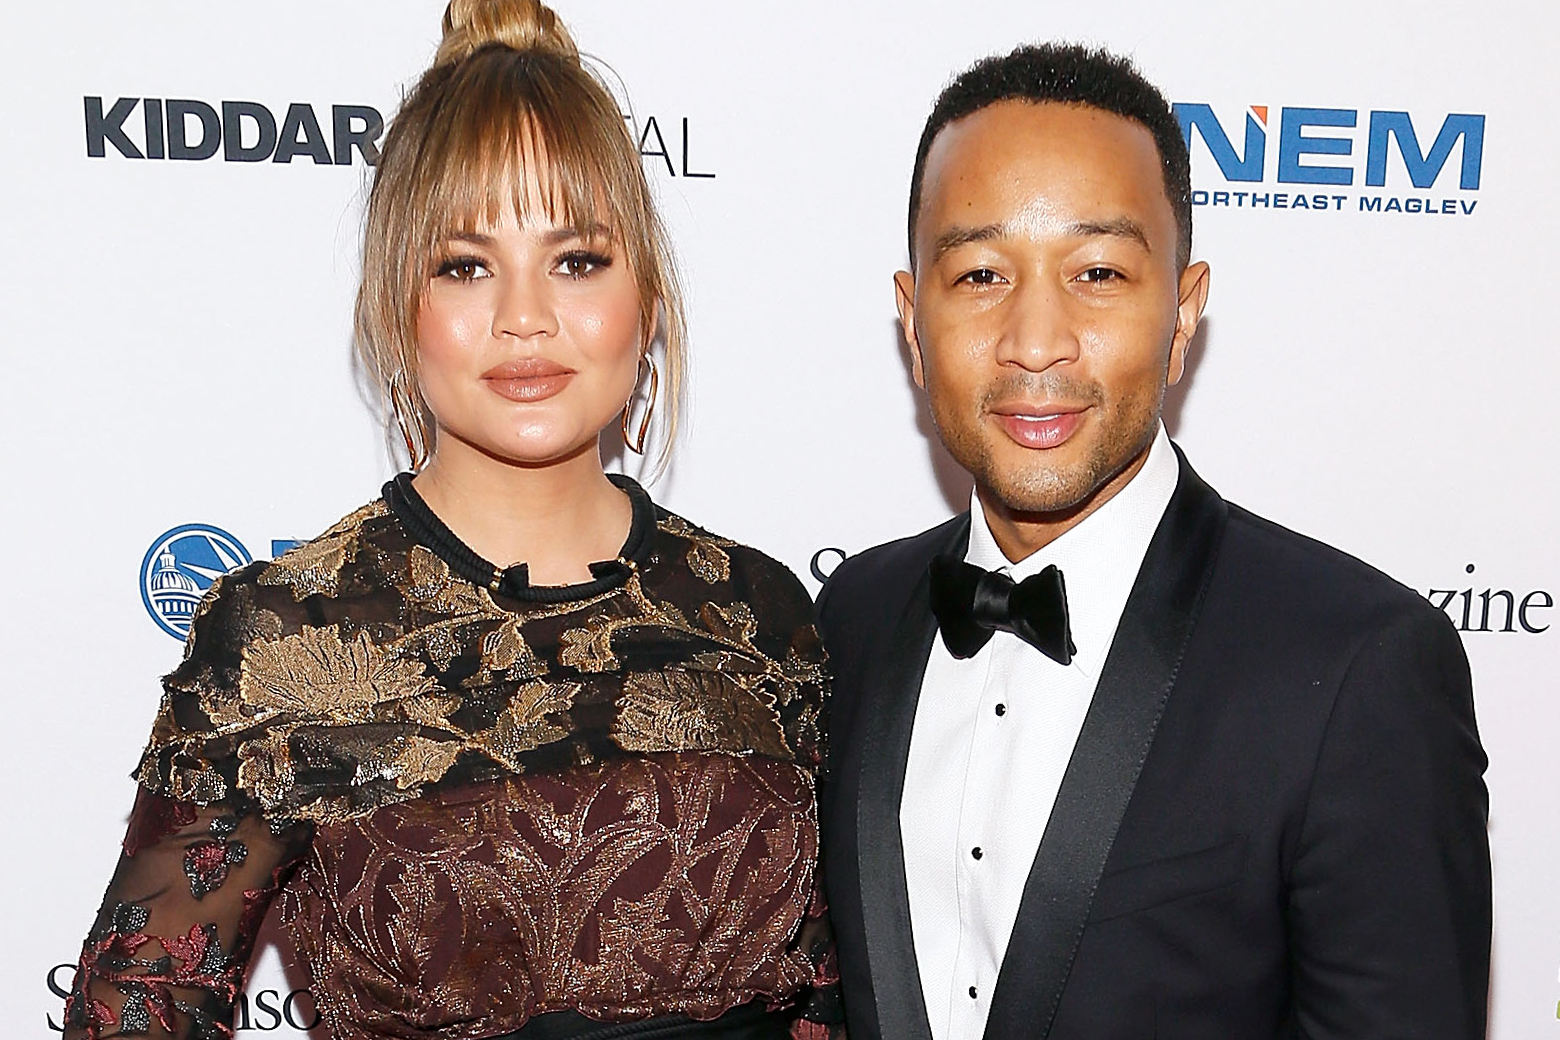 https://bravotvnz.s3.amazonaws.com/uploads/articles/dish-113017-chrissy-teigen-john-legend.jpg